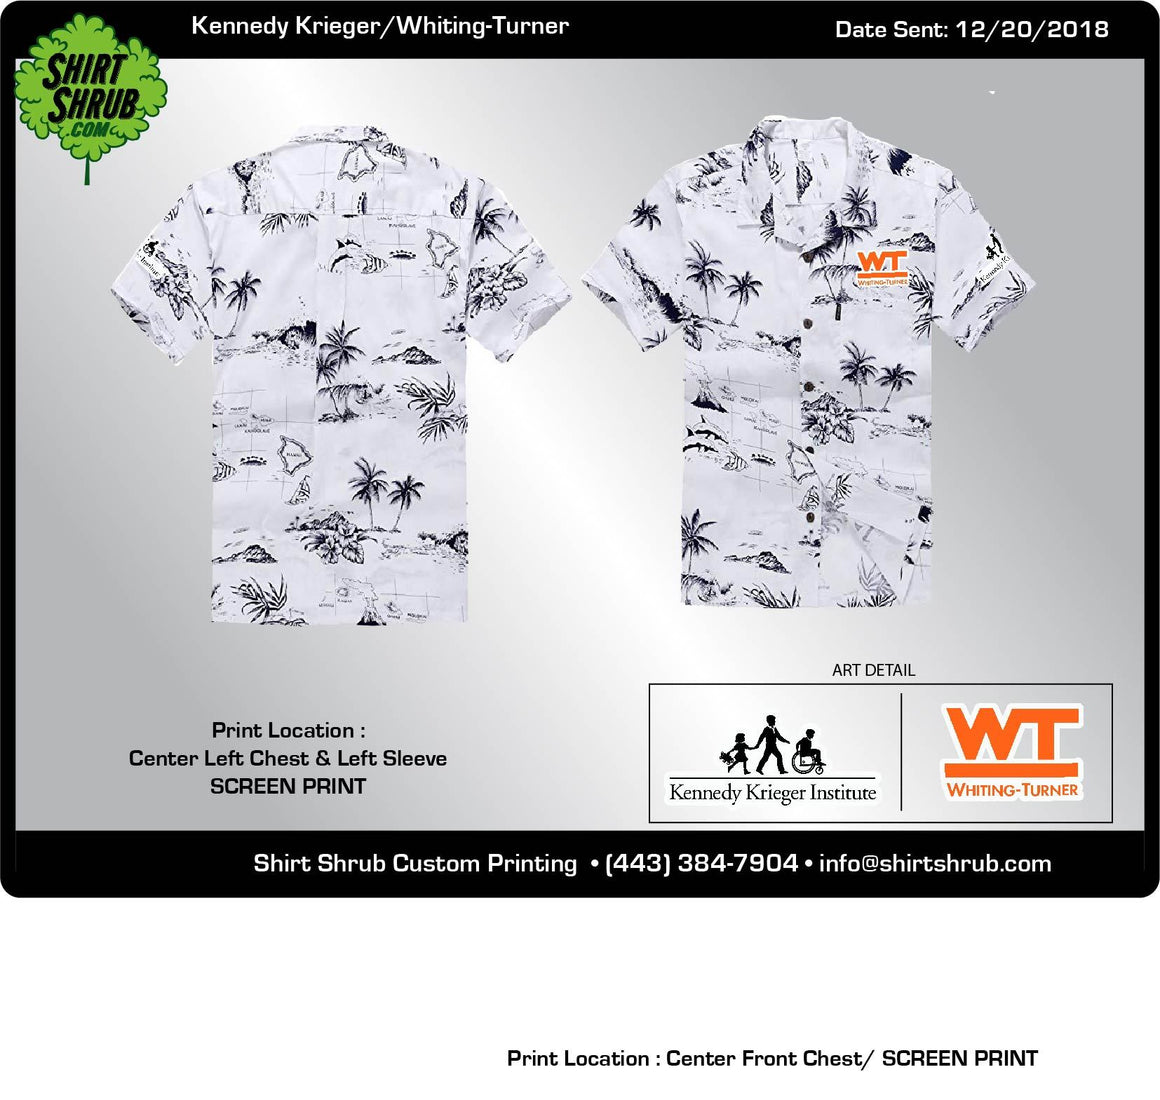 Kennedy Krieger Inst./Whiting Turner Hawaiian Shirts